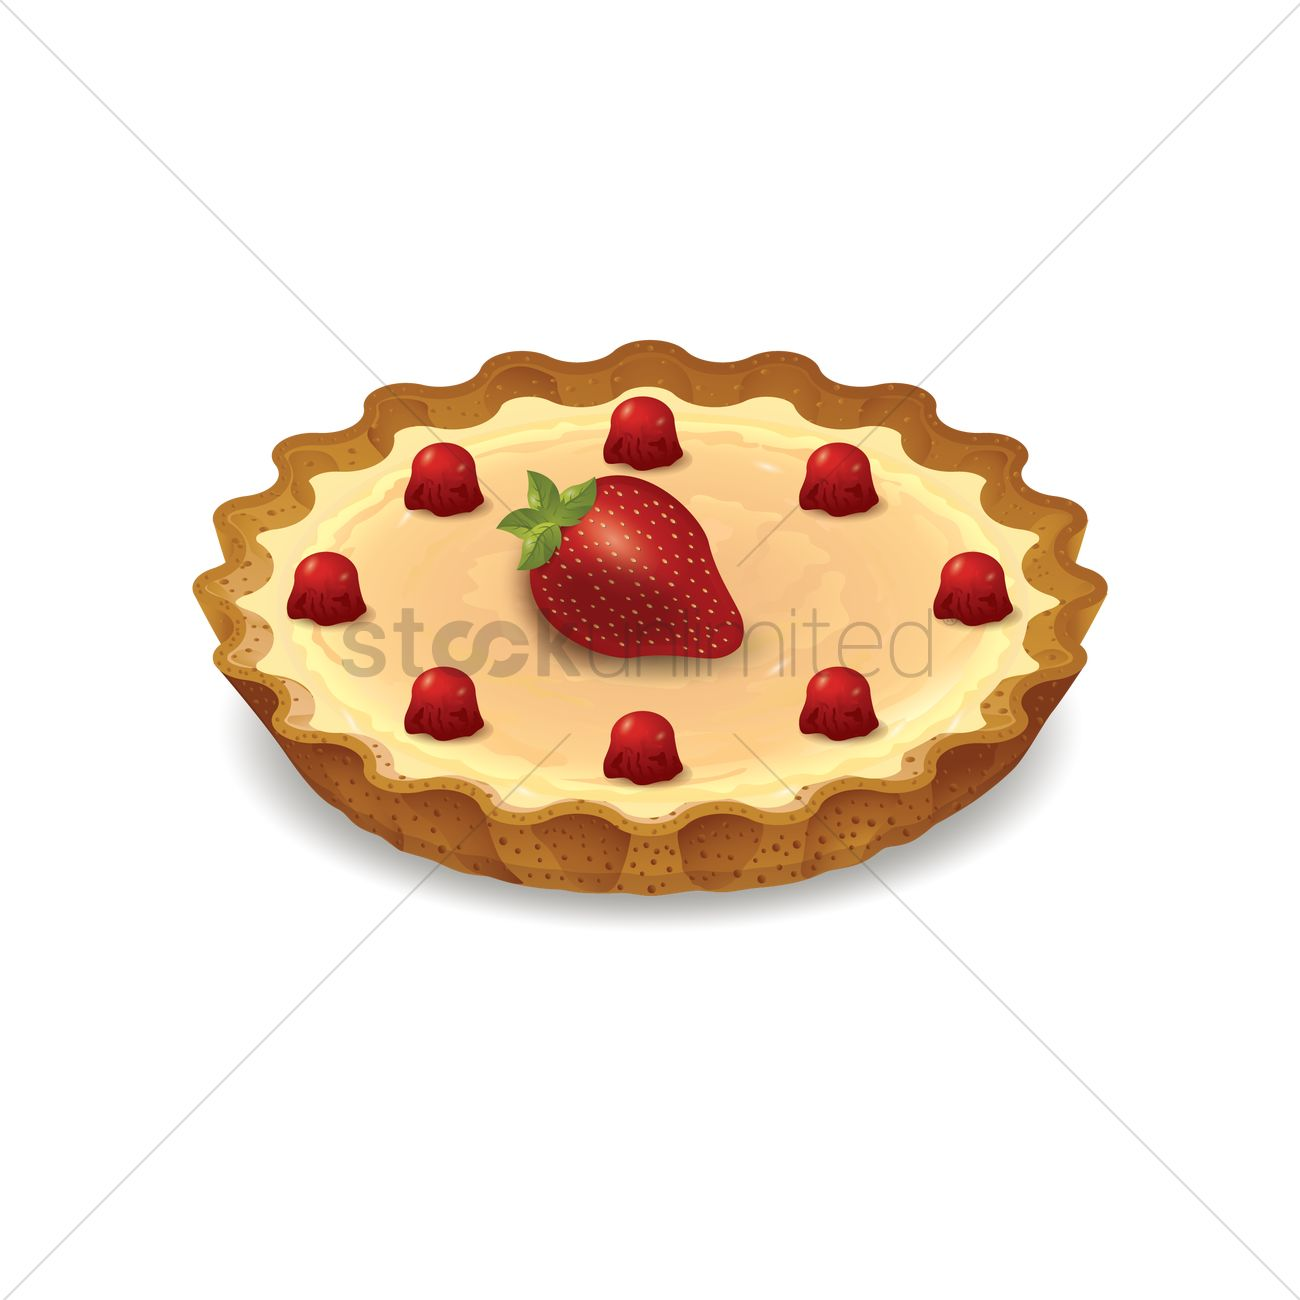 Fruit tart Vector Image.